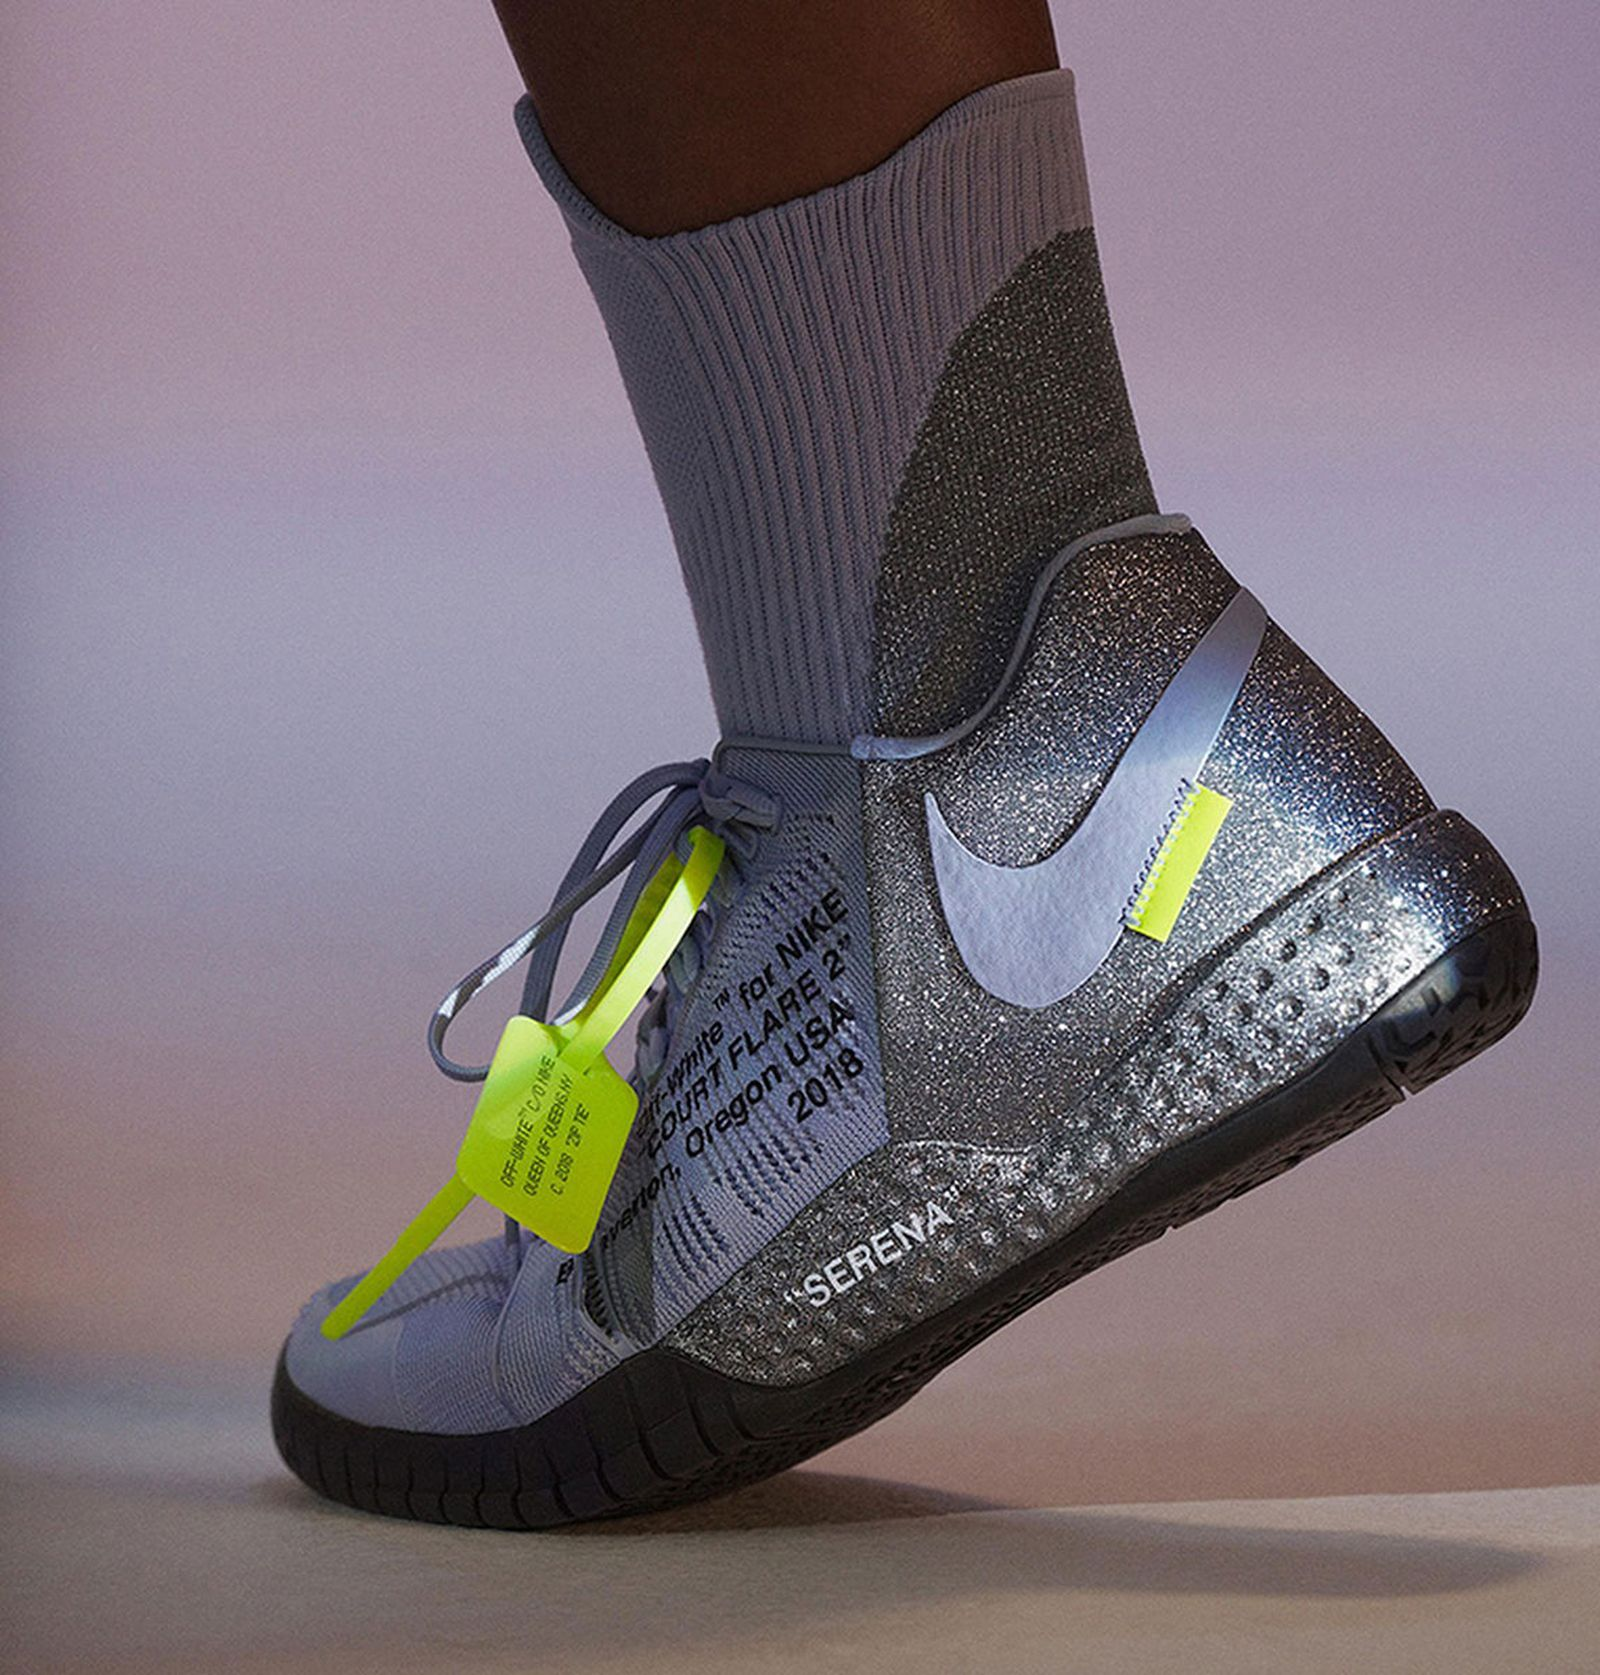 off-white-nike-new-sneakers-2021-08